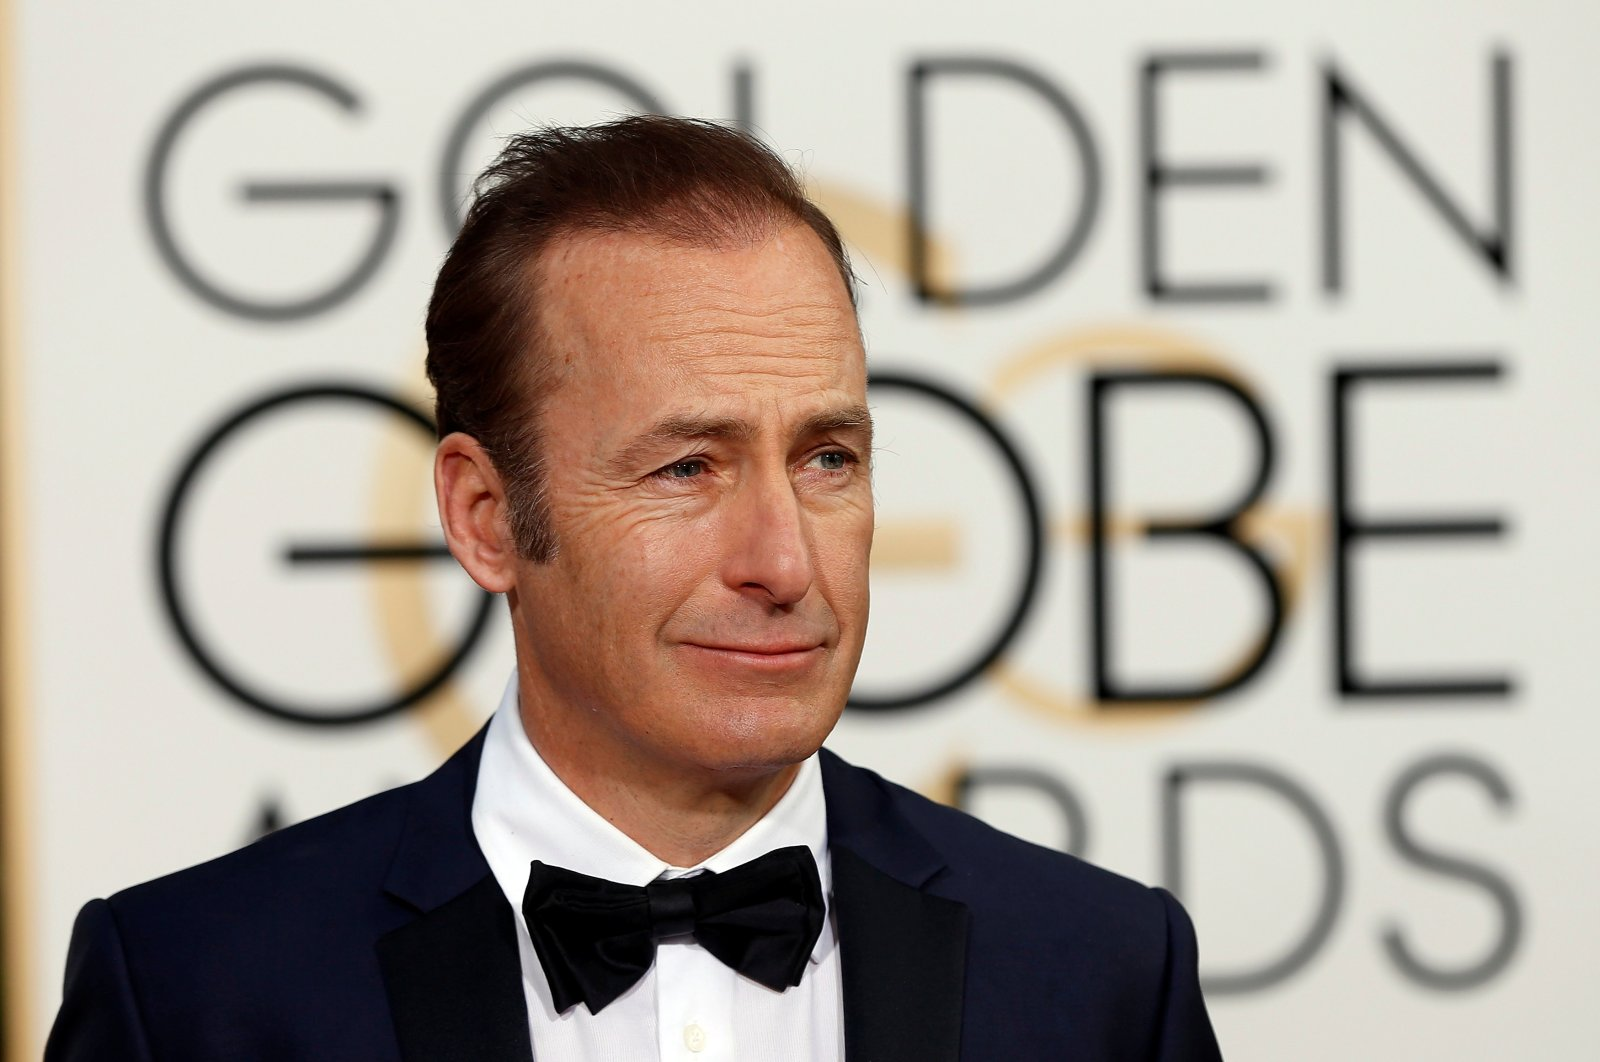 Actor Bob Odenkirk arrives at the 73rd Golden Globe Awards in Beverly Hills, California, U.S., Jan. 10, 2016. (Reuters Photo)